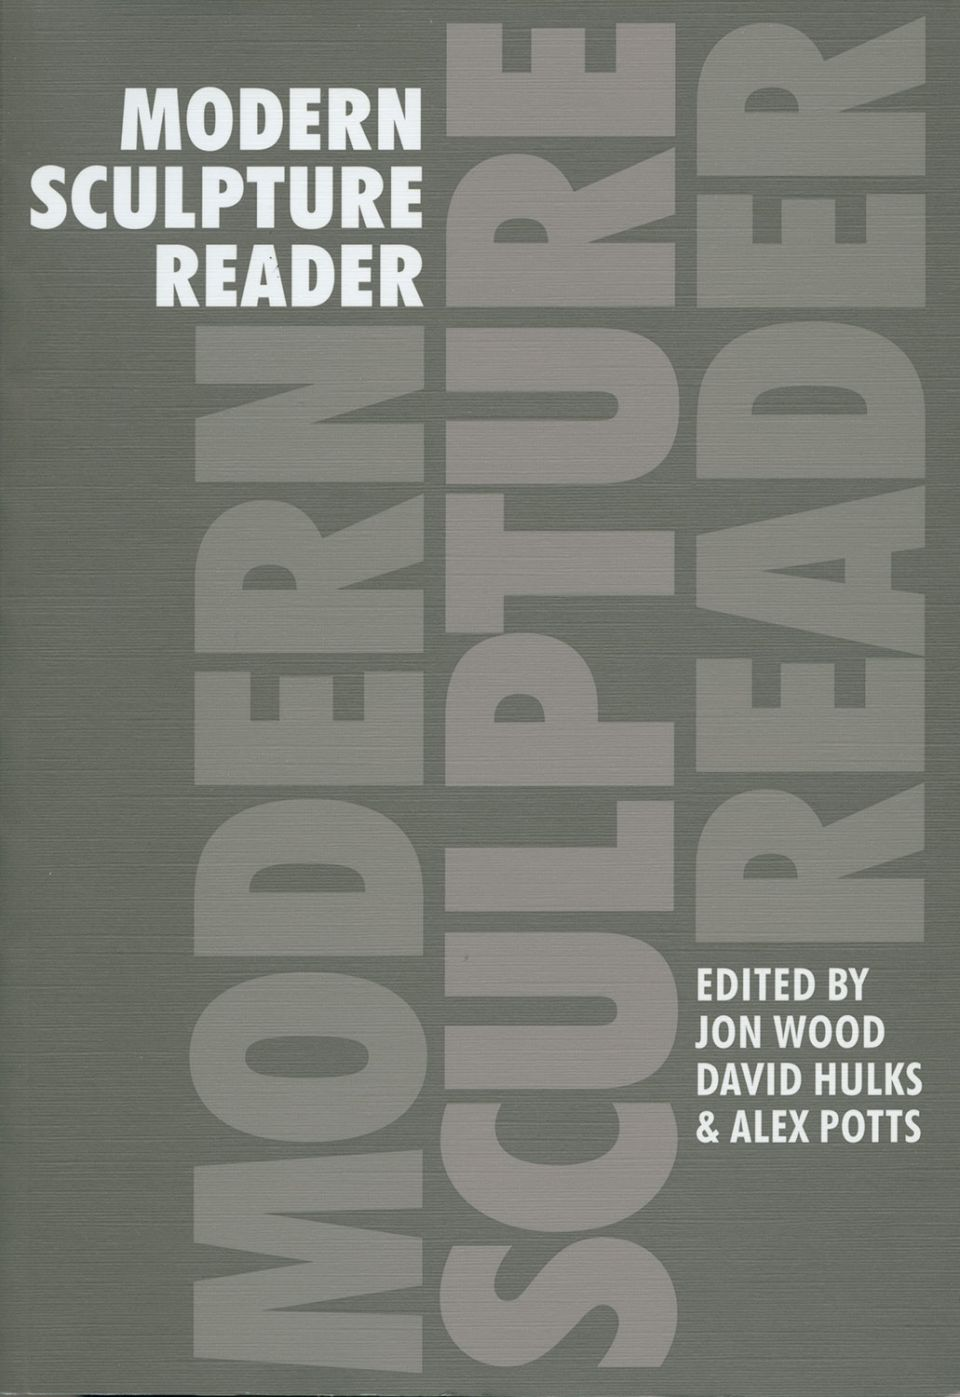 Modern Sculpture Reader catalogue